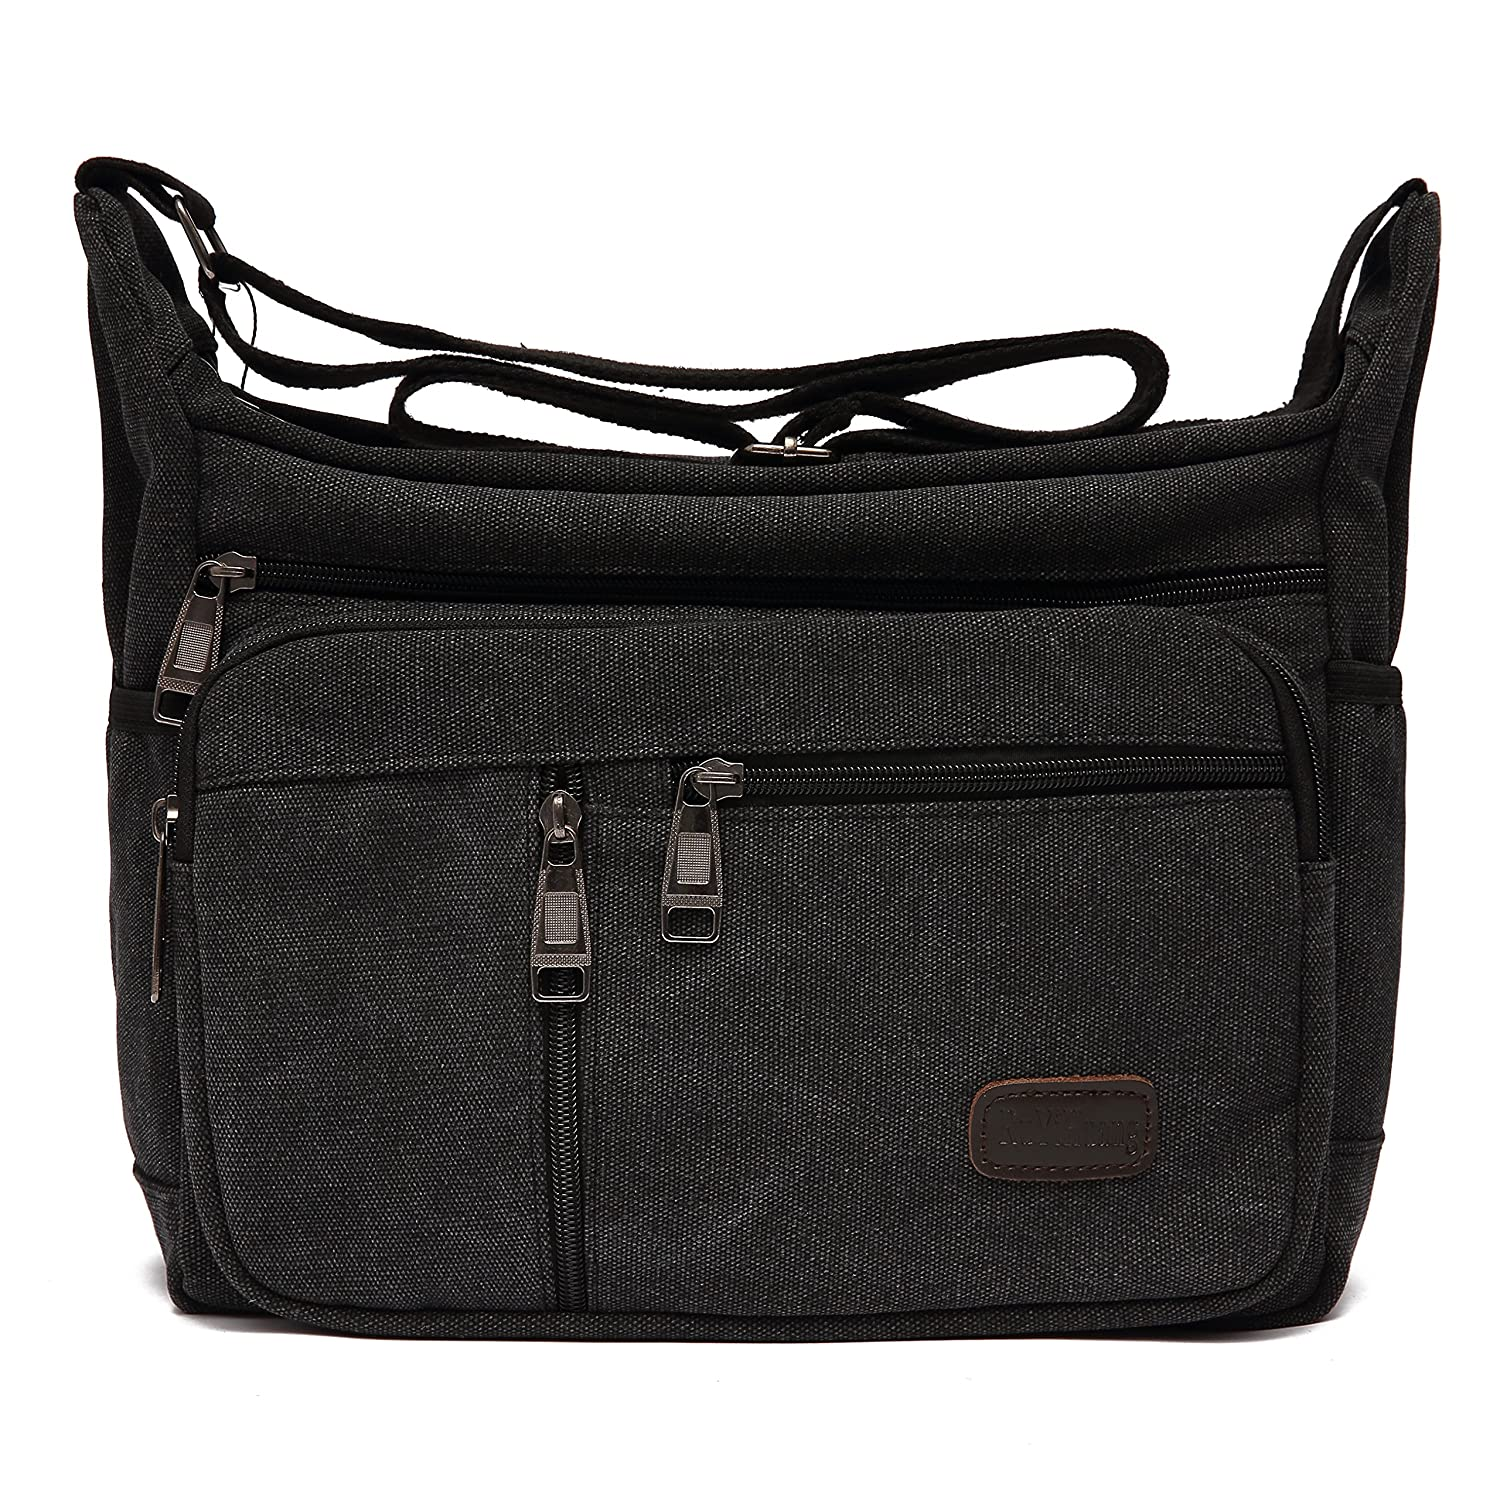 Black-2 Mlife Brand Men Canvas Messenger Bag with Multi Pockets